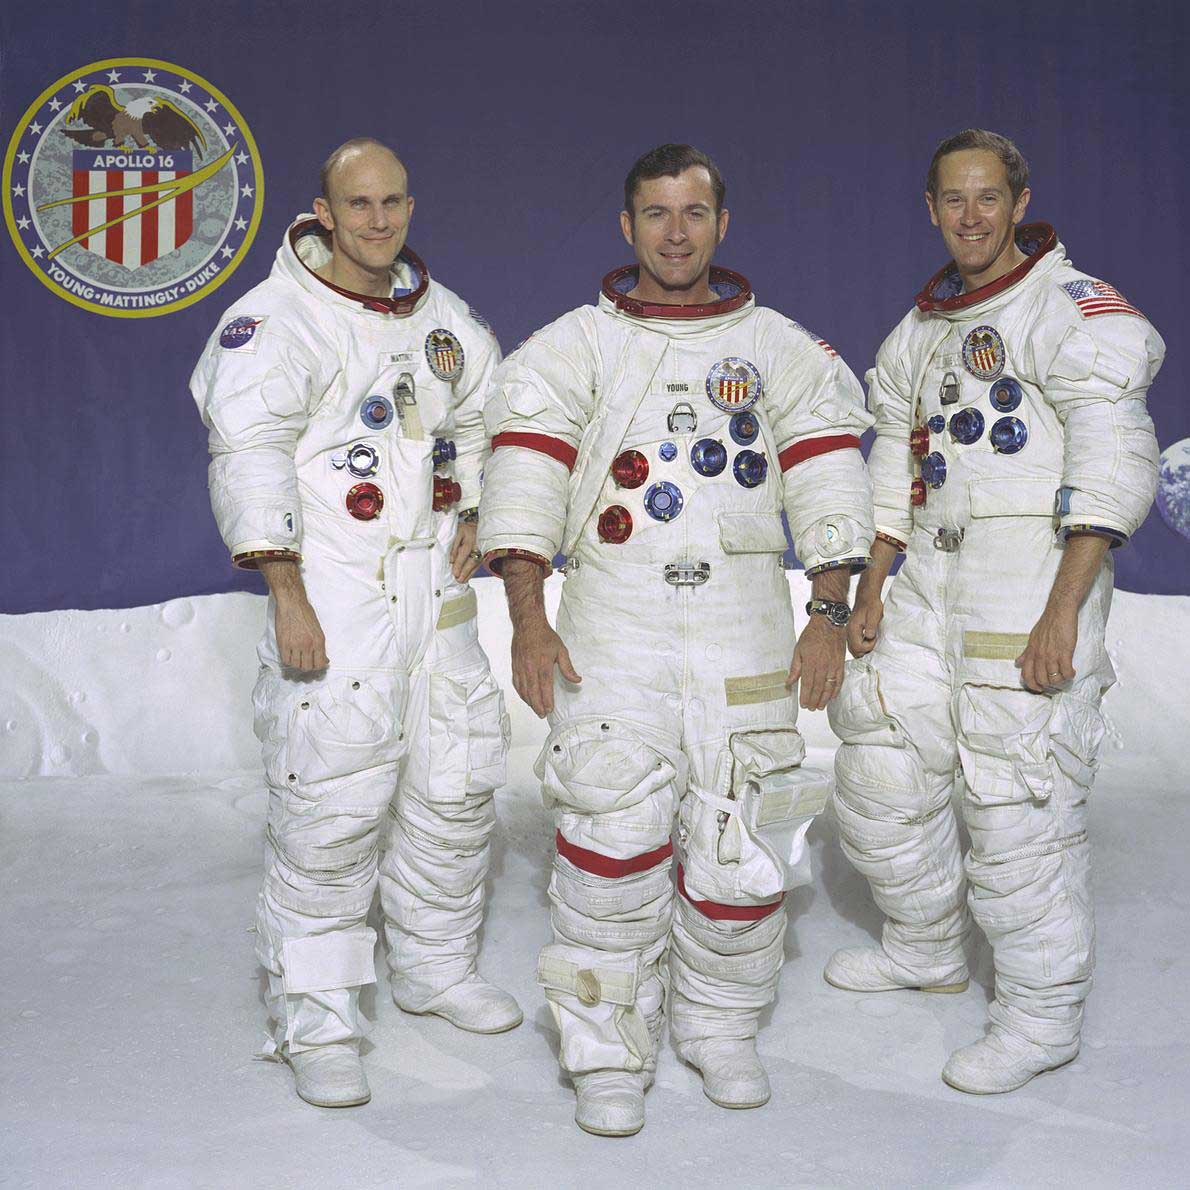 The crew of the Apollo 16 spaceflight pictured from left to right: Thomas K. Mattingly II, John W. Young, and Charles M. Duke Jr.